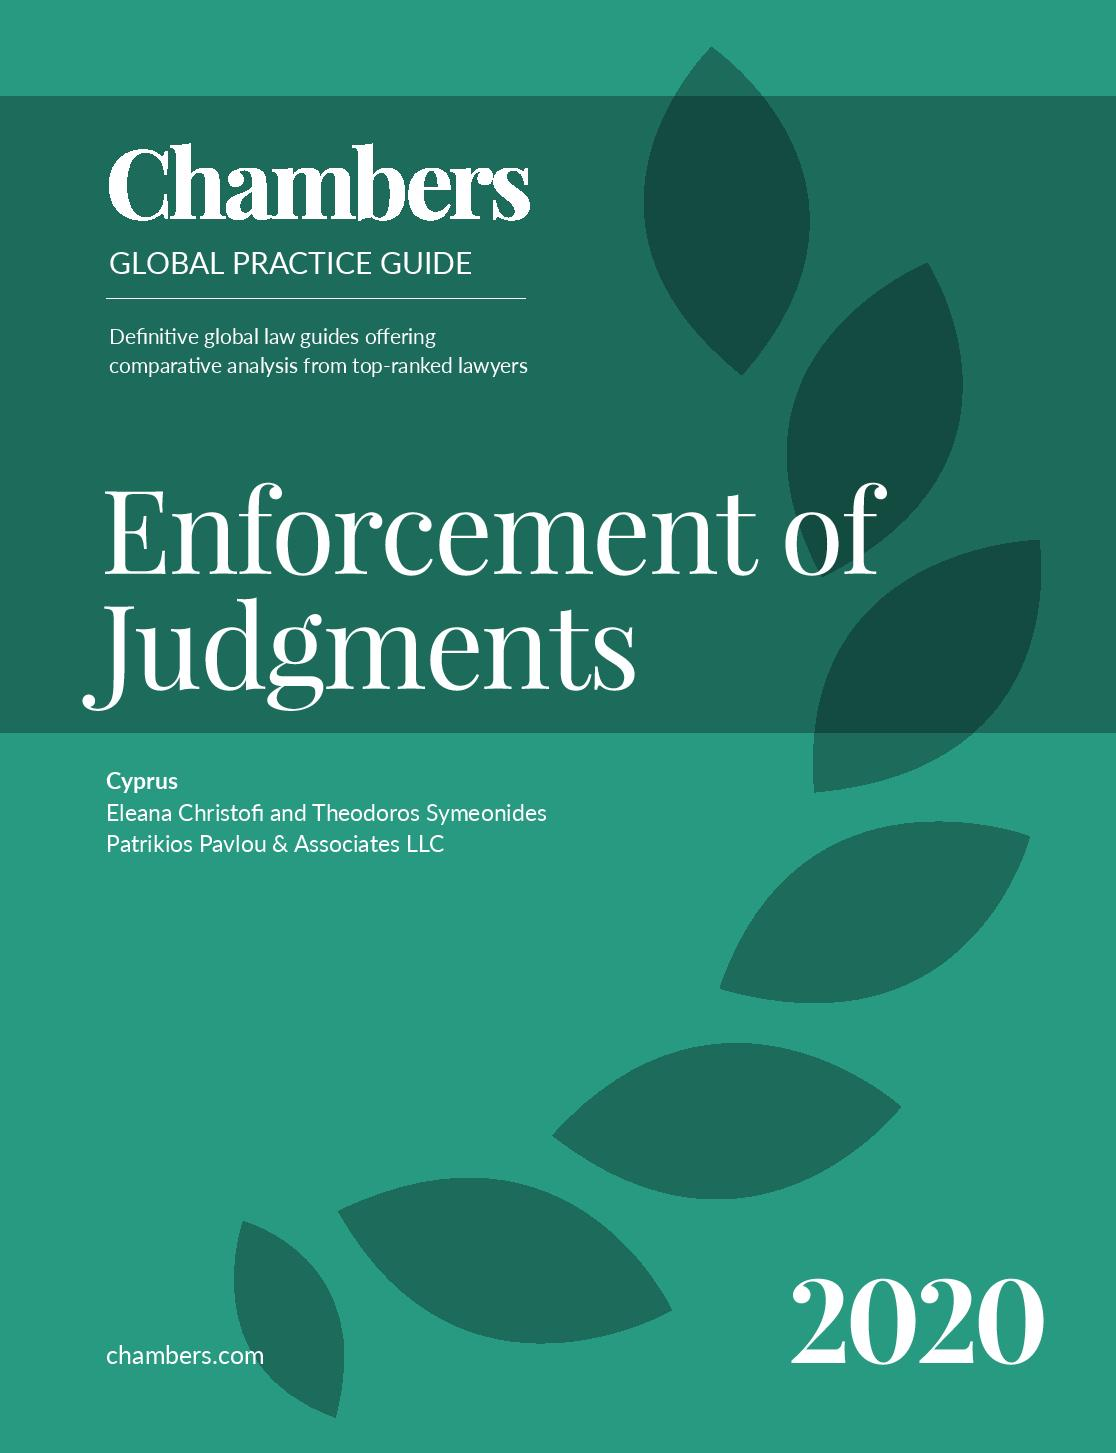 Patrikios Pavlou & Associates LLC: Enforcement of Judgments – Cyprus 2020